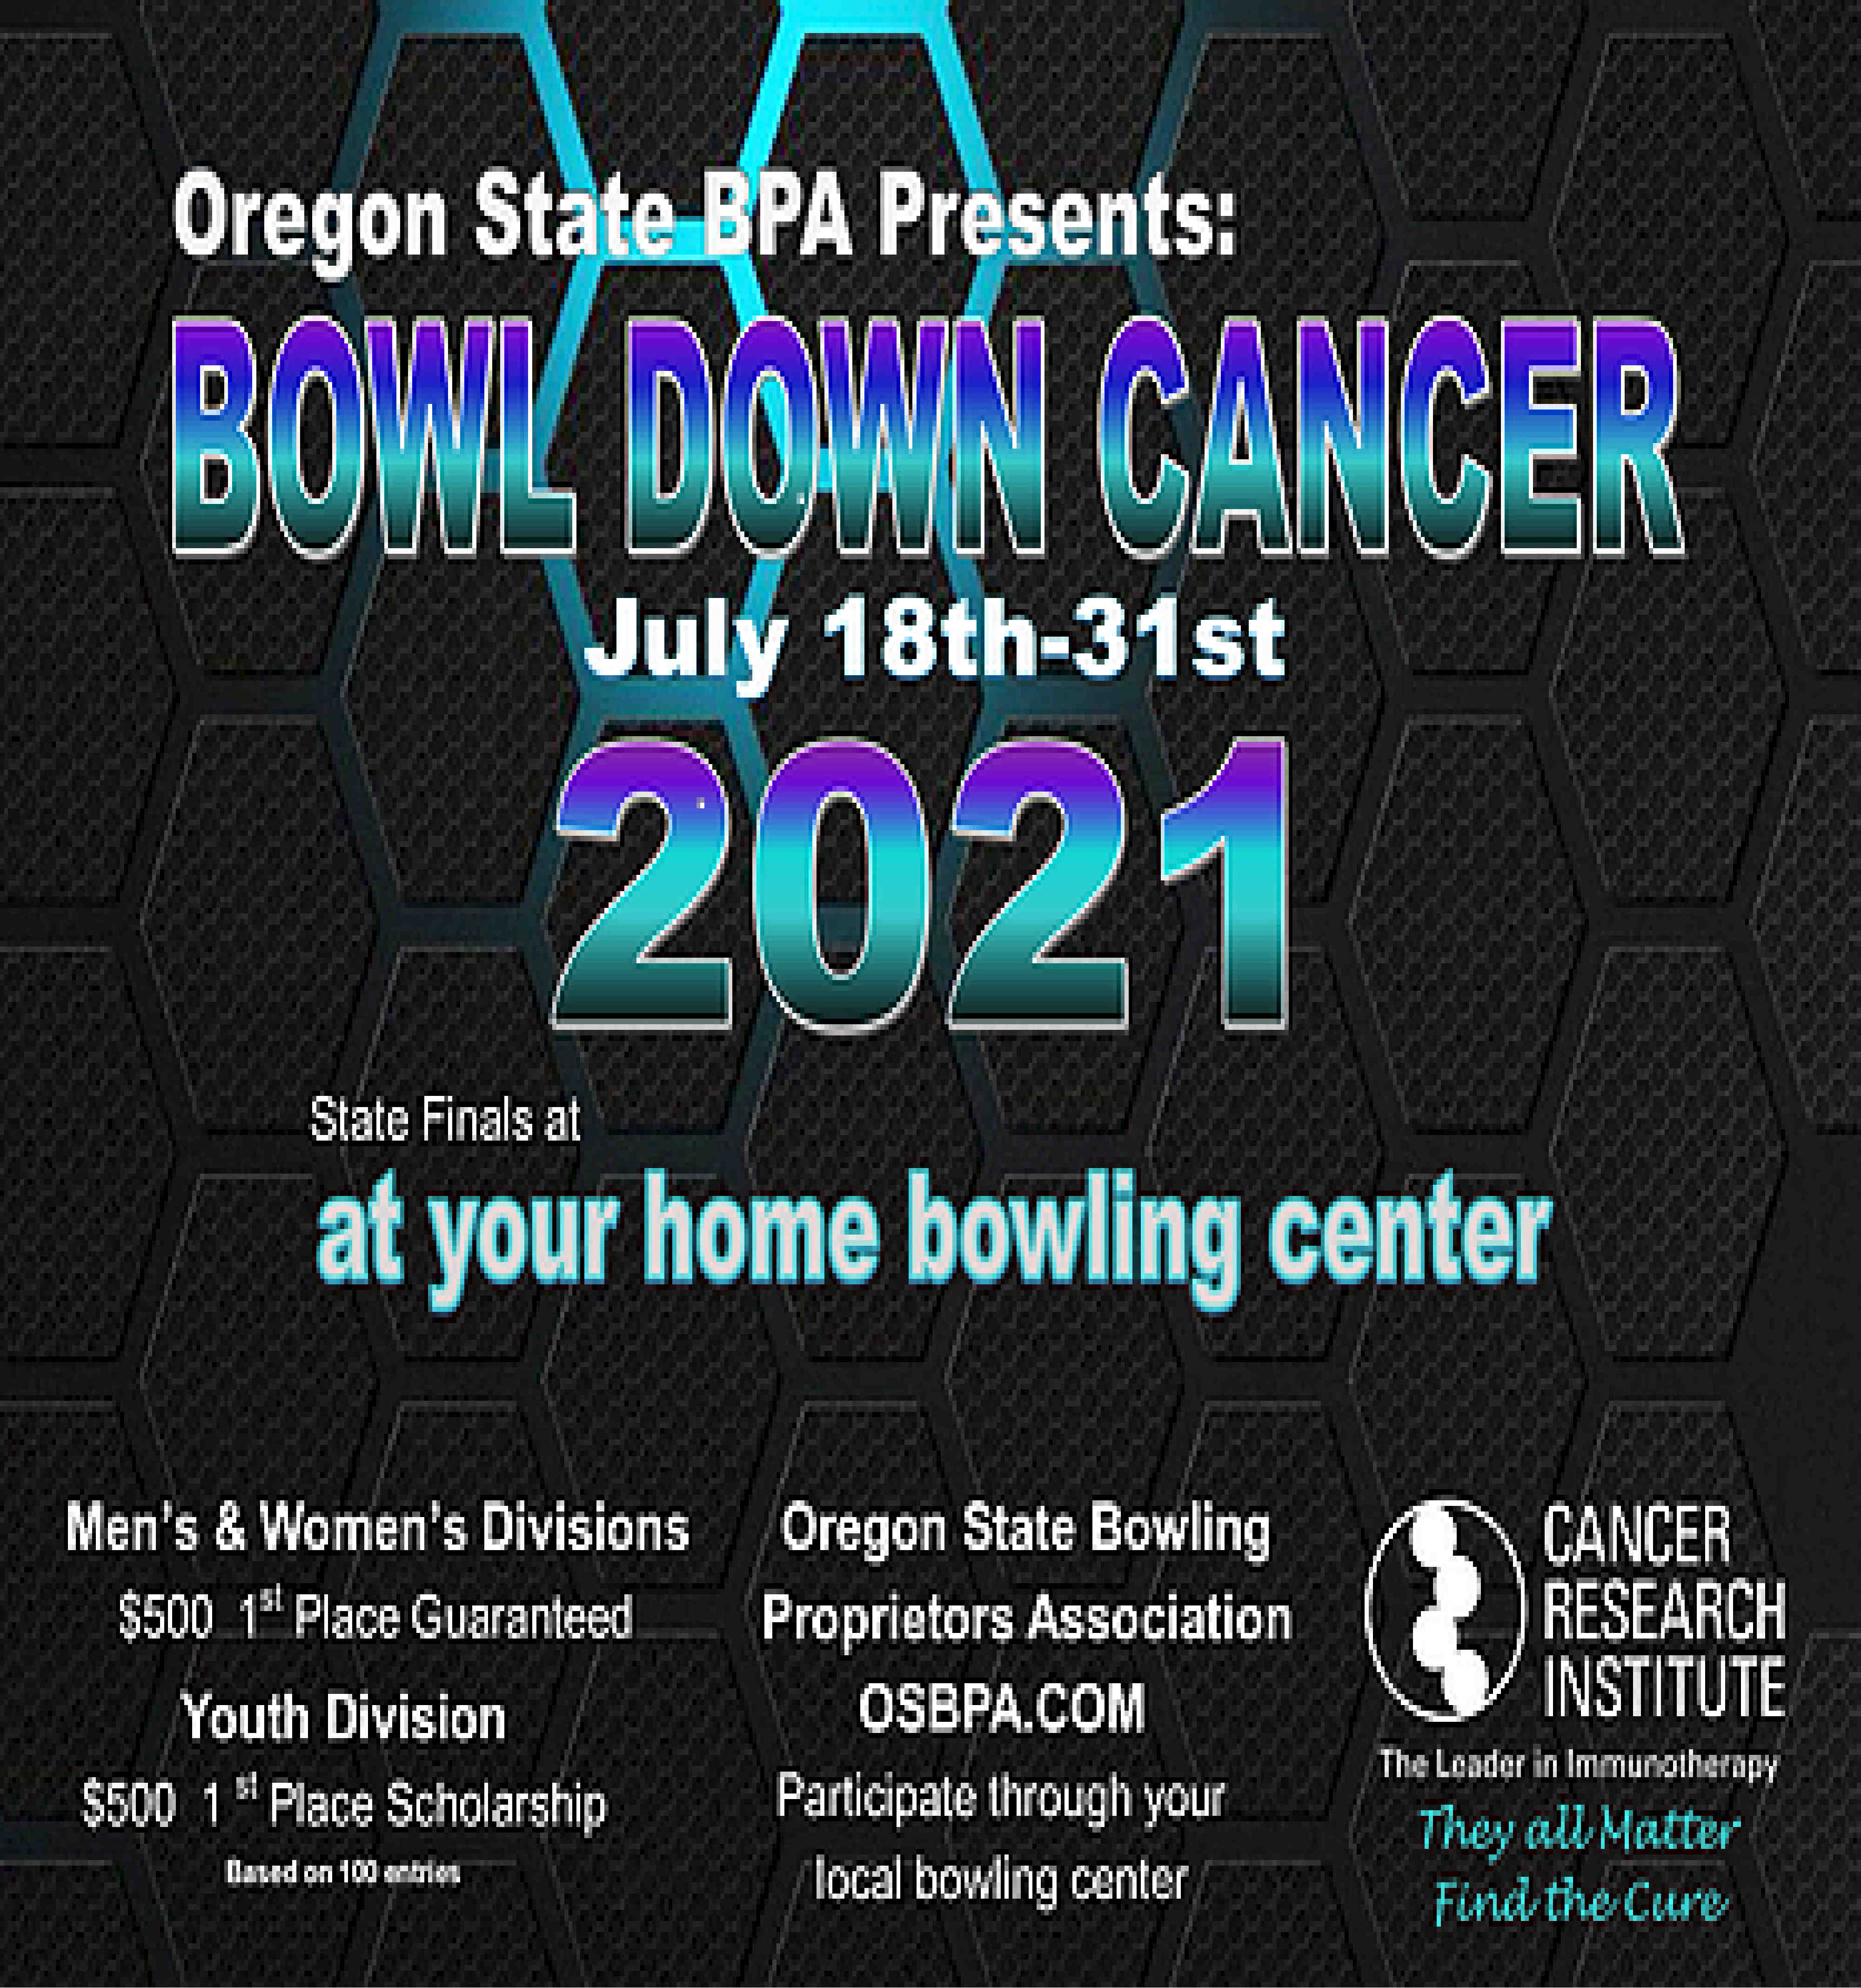 Bowl down cancer state tournament information